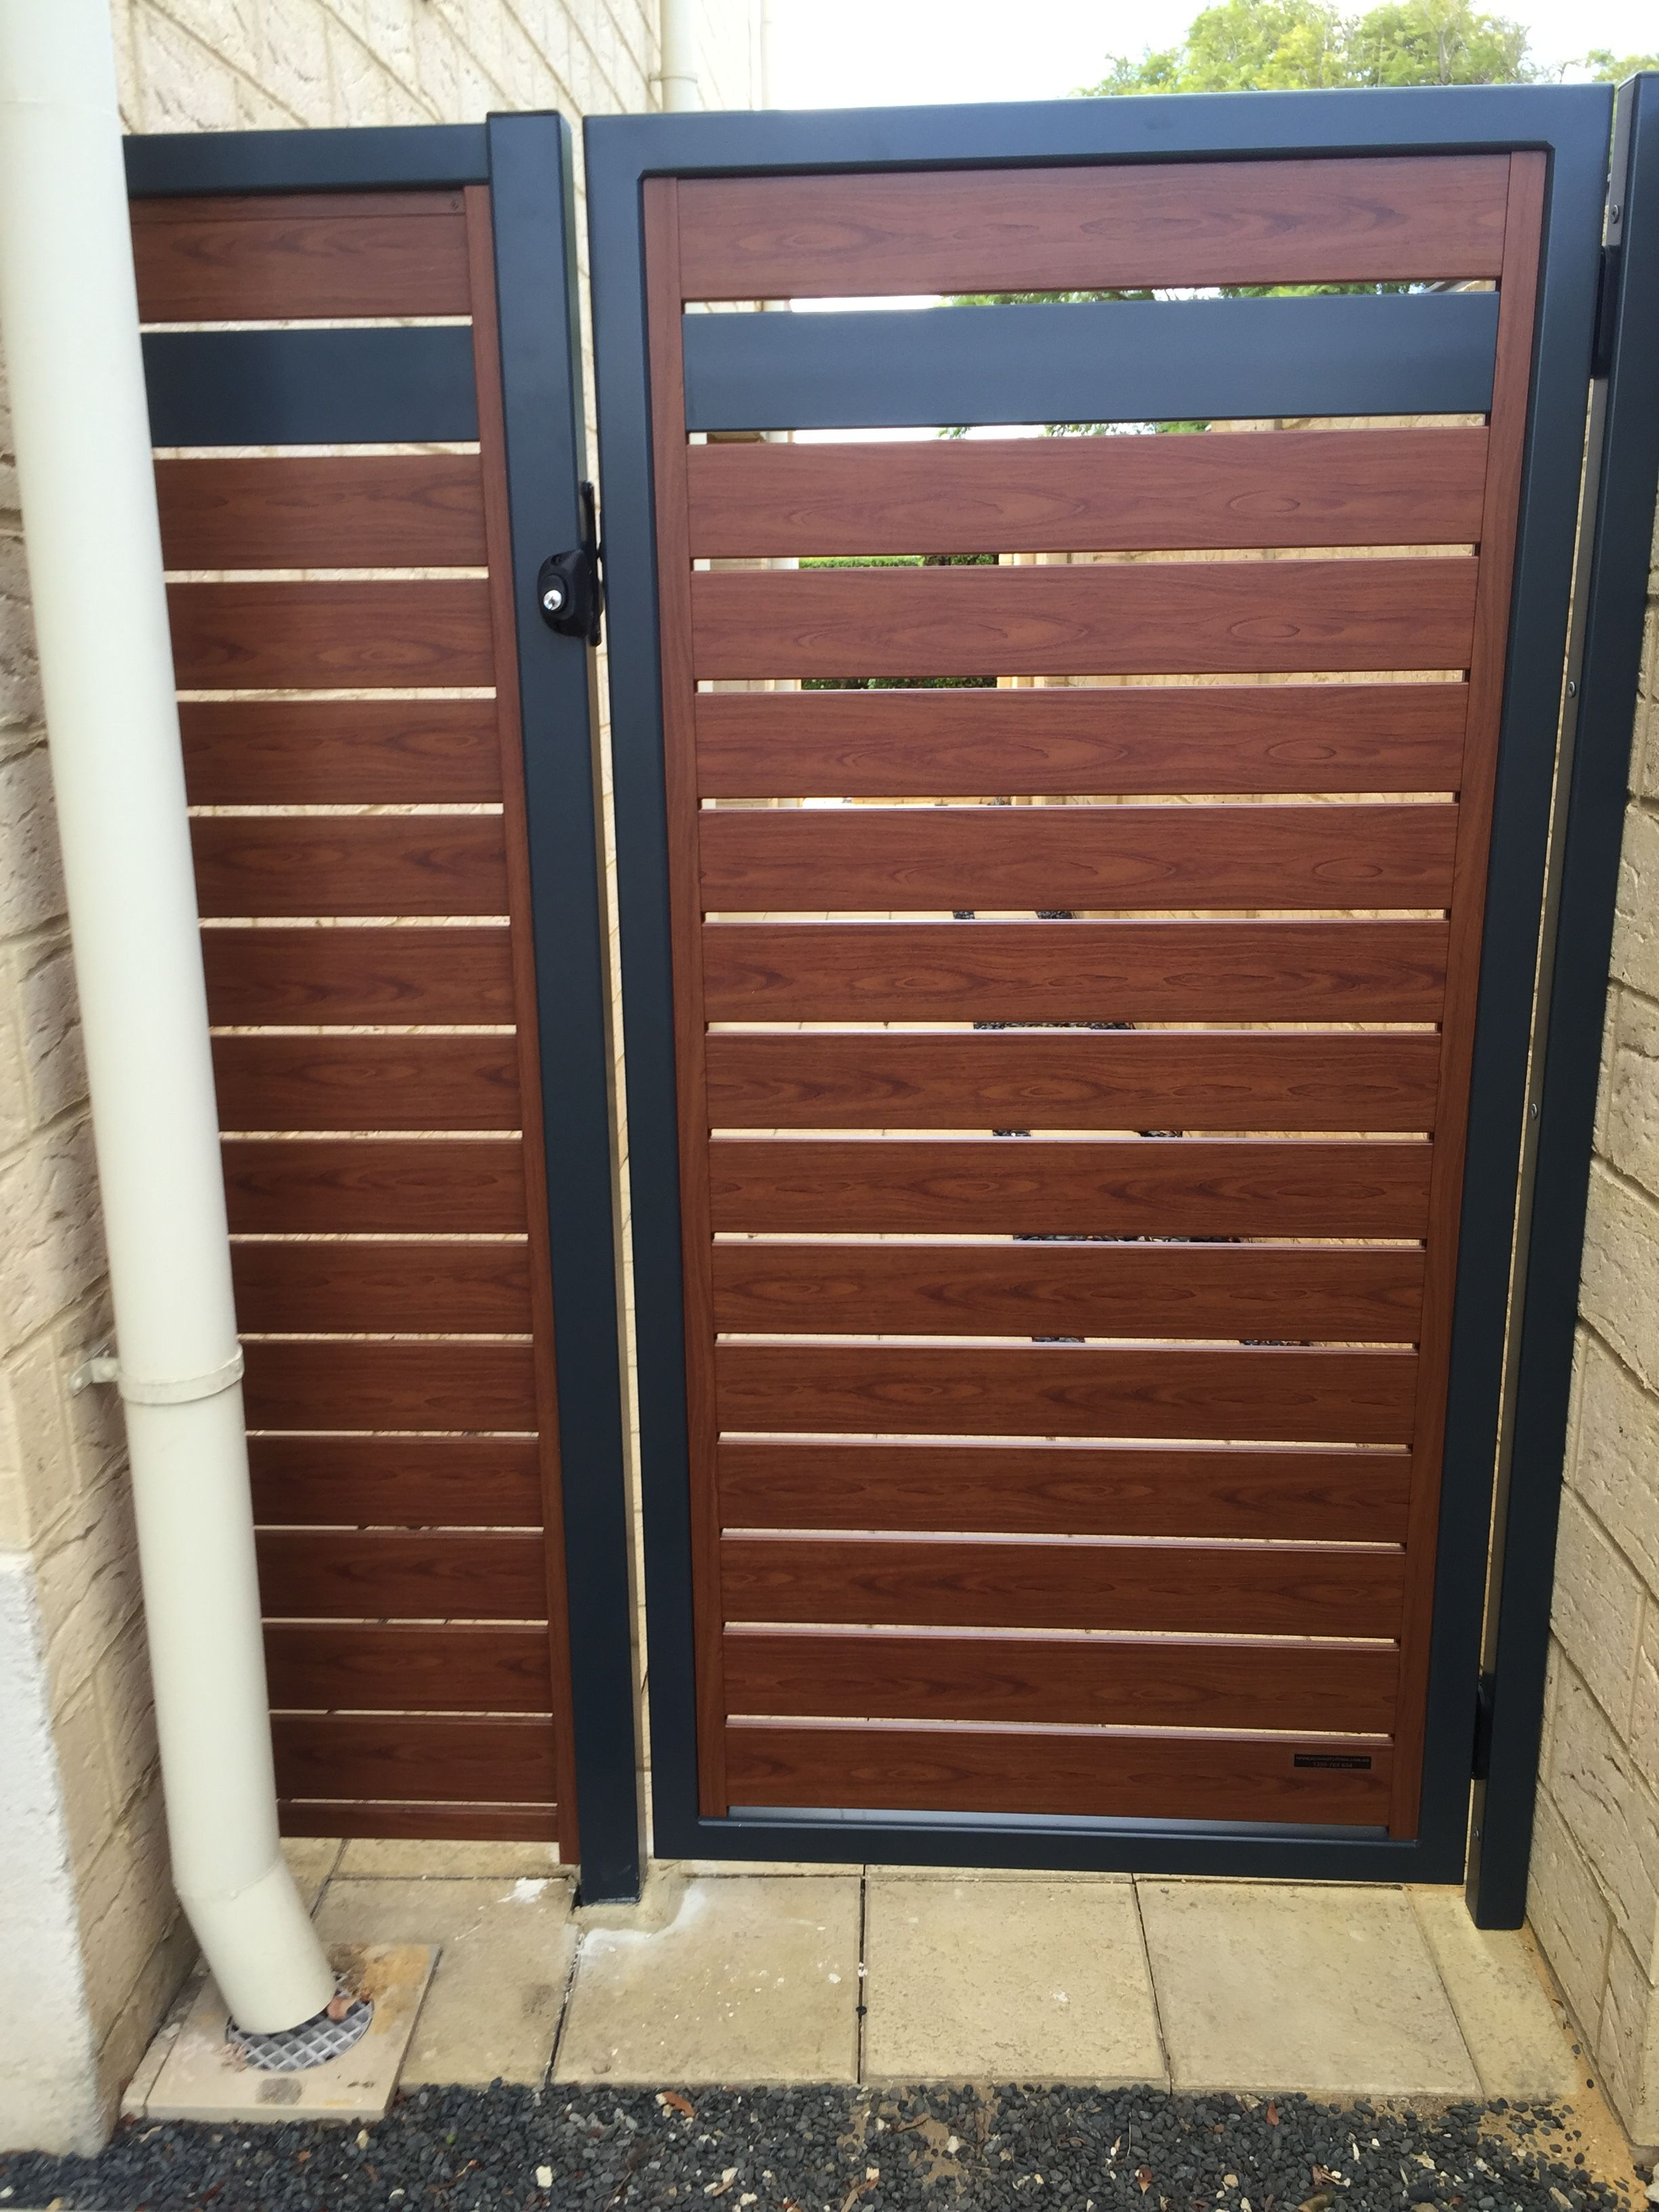 Contrast Done Really Really Well The Knotwood Slats Match The Powdercoat Welded Frame Door Gate Design Wooden Gate Door House Gate Design